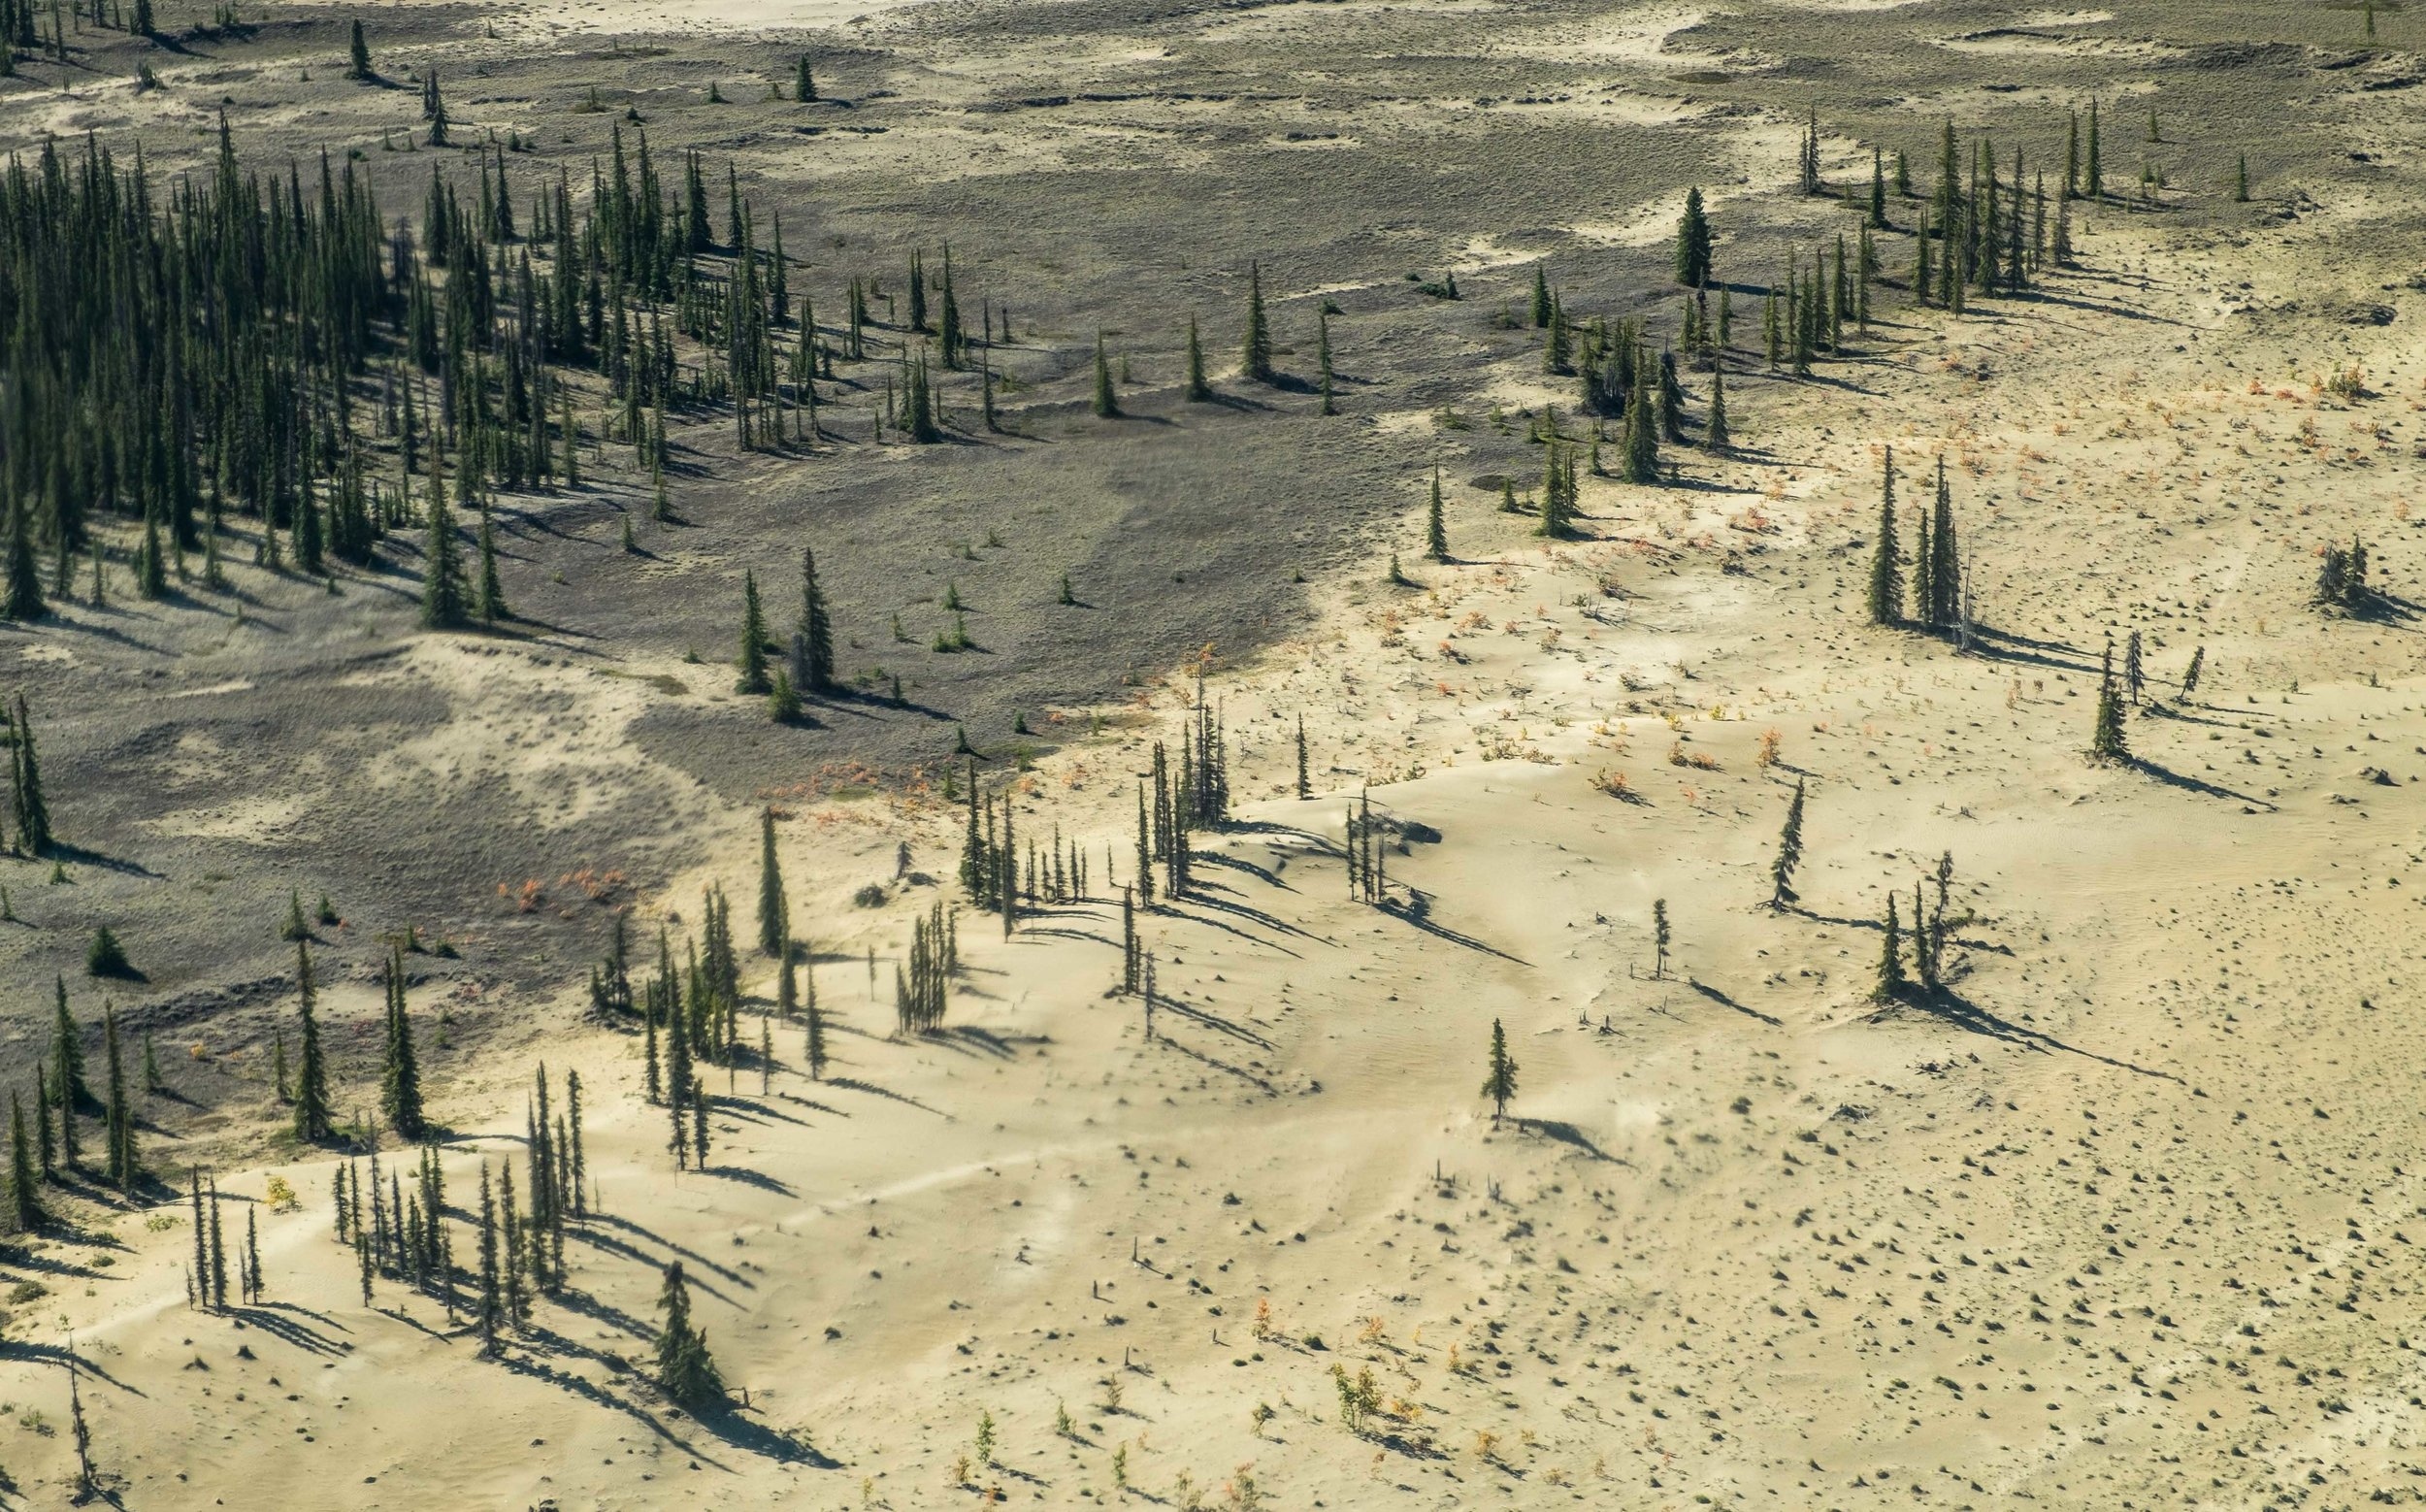 More scenes of Kobuk from the air.